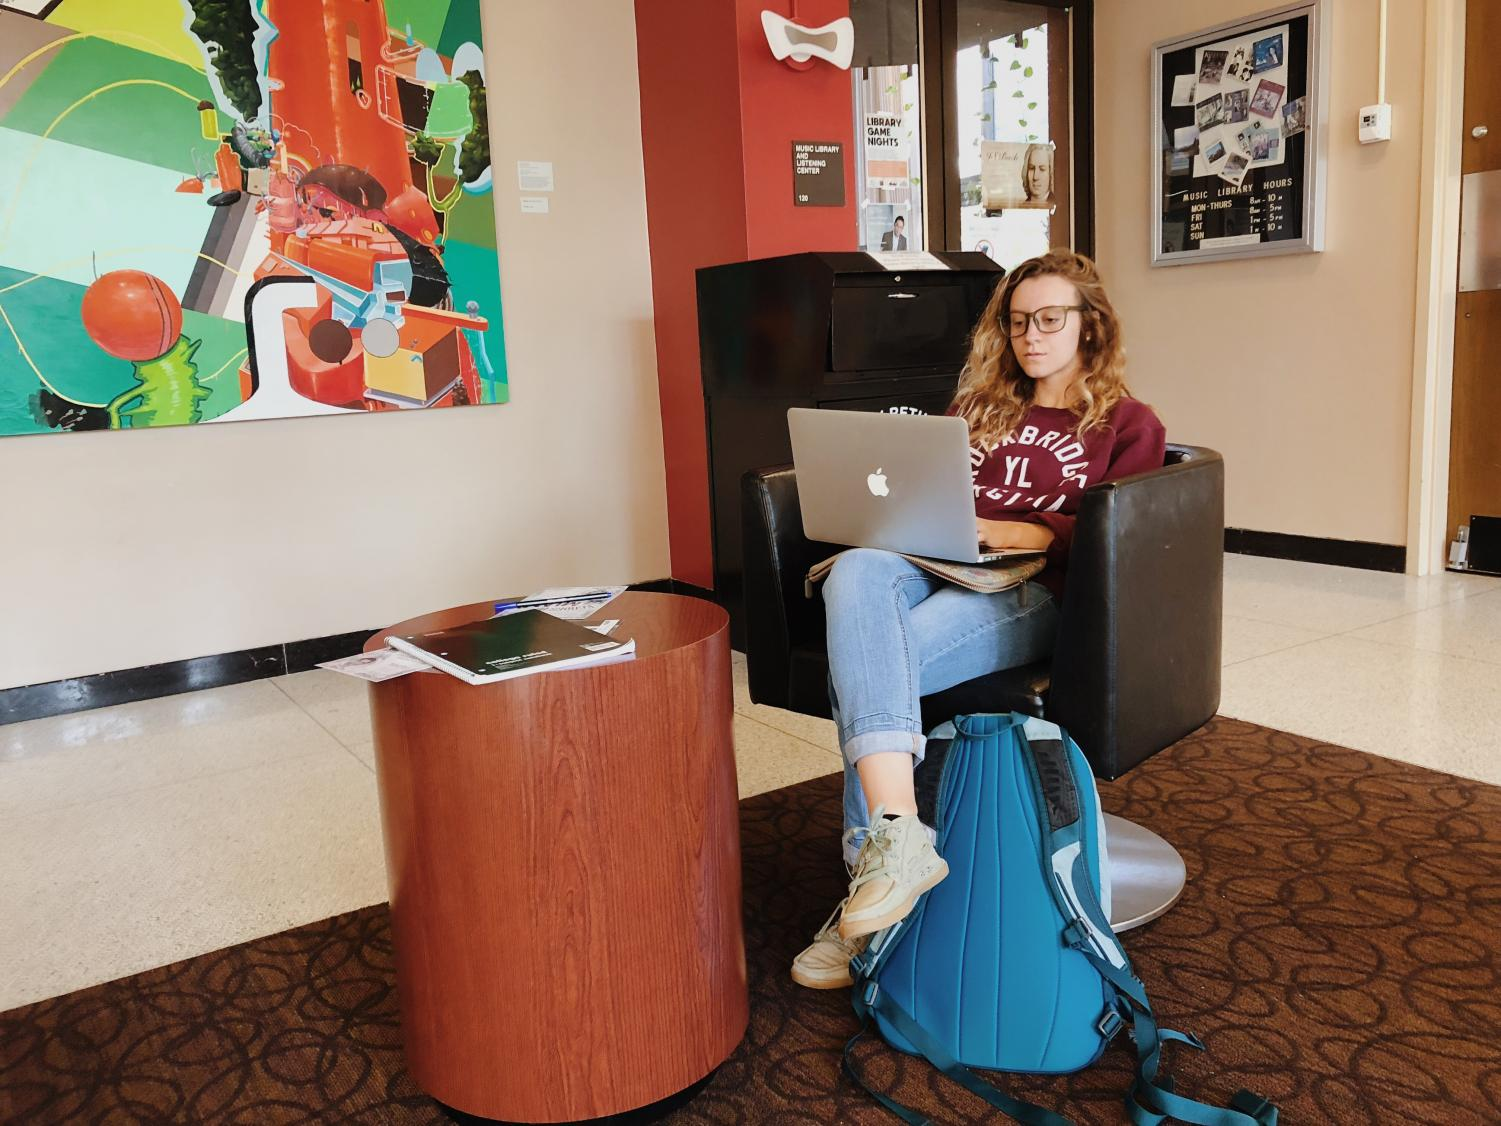 Ariel Williams, junior at Miami University, finishes homework at the Amos Music Library.